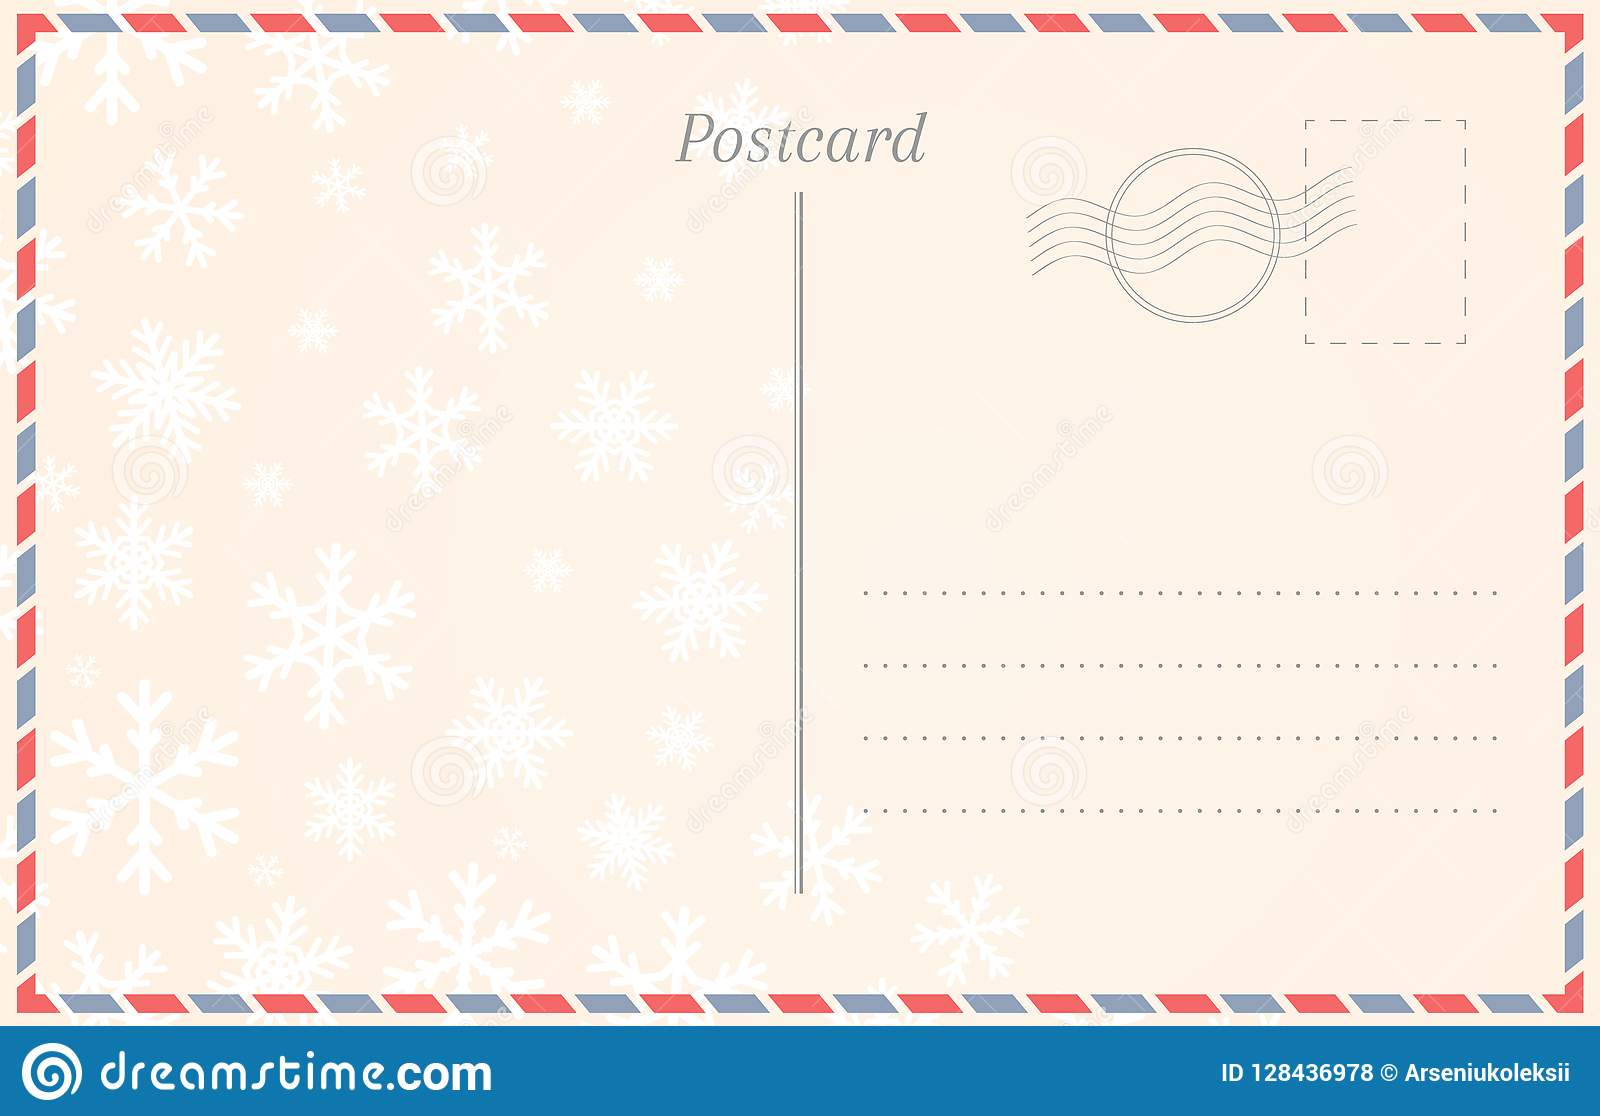 Postcard template with snowflakes for winter holidays and.